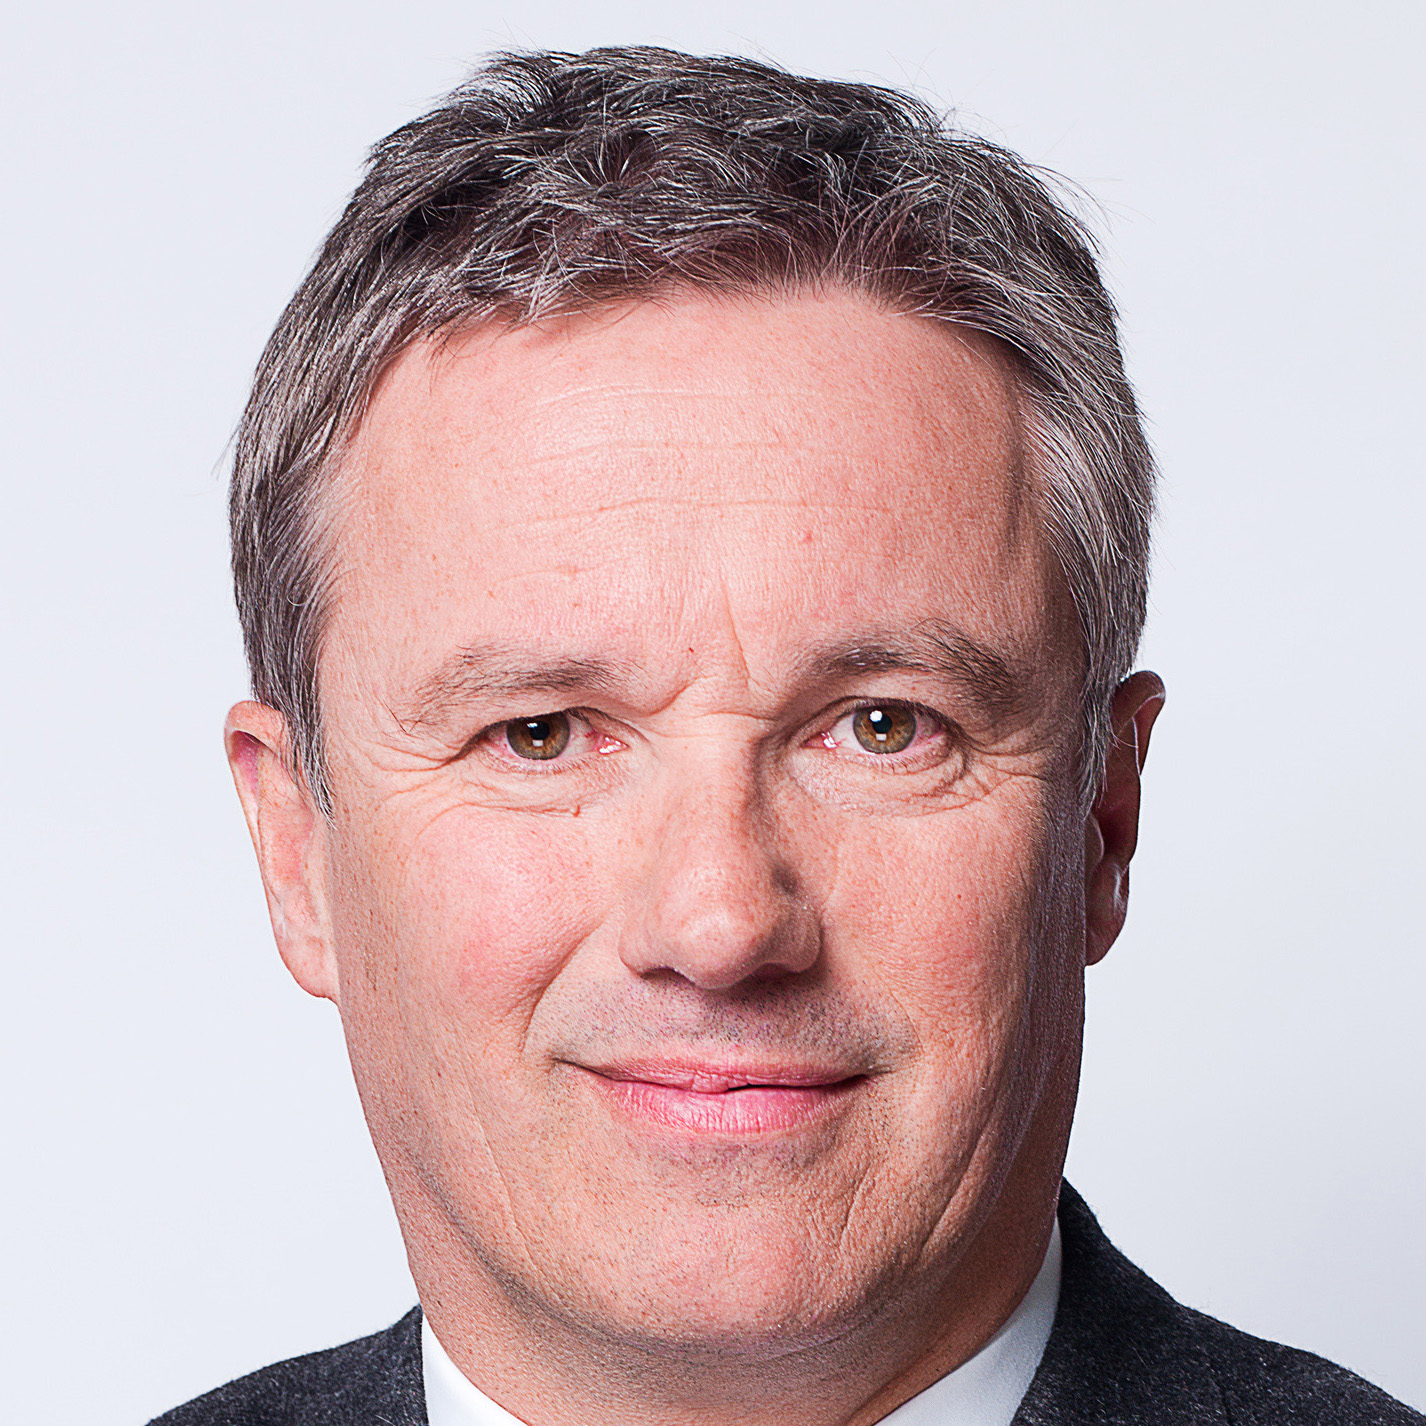 nicolas dupontaignan french presidential candidate 2017 - attribution https://commons.wikimedia.org/wiki/File:Portrait_5_-_Flickr_-_dupontaignan.jpg